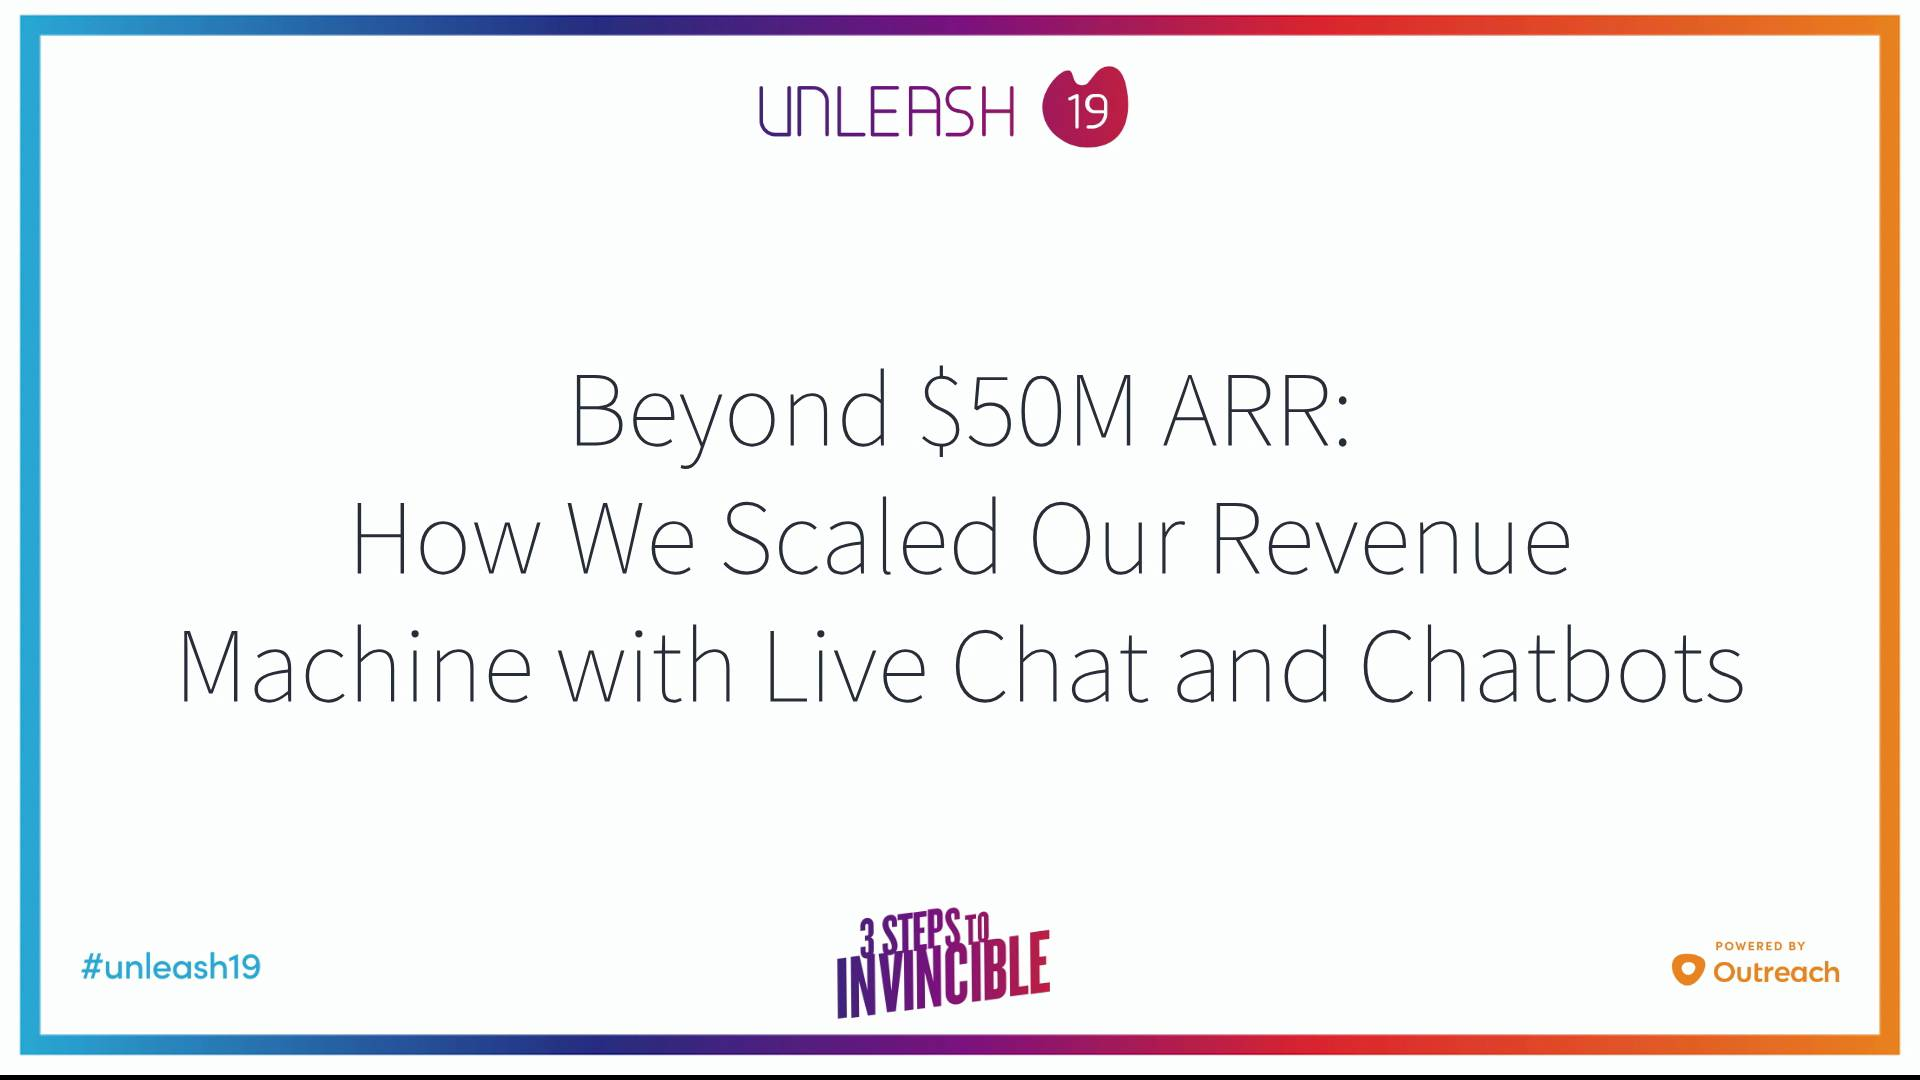 Beyond 50M ARR How We Scaled Our Revenue Machine with Live Chat and Chatbots - Scott Barker, David Katz